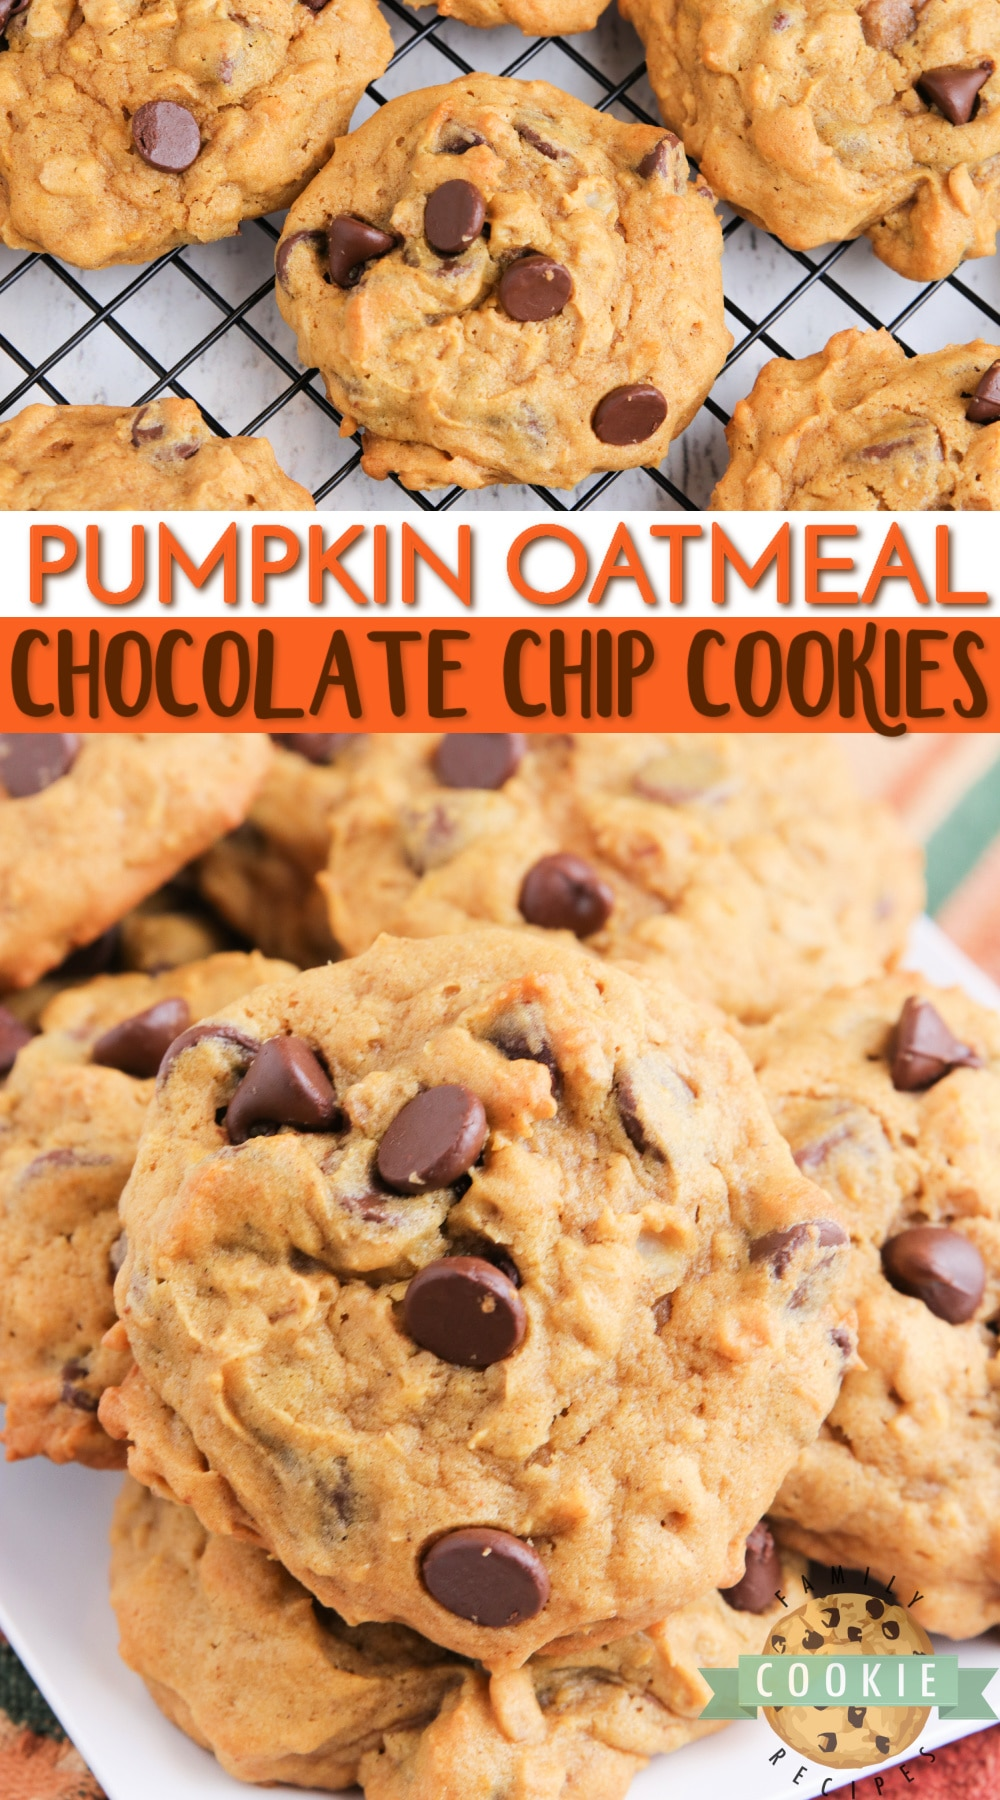 Pumpkin Oatmeal Chocolate Chip Cookies are soft, moist and loaded with pumpkin, oats and chocolate chips. Perfect oatmeal chocolate chip cookie recipe for fall! via @buttergirls